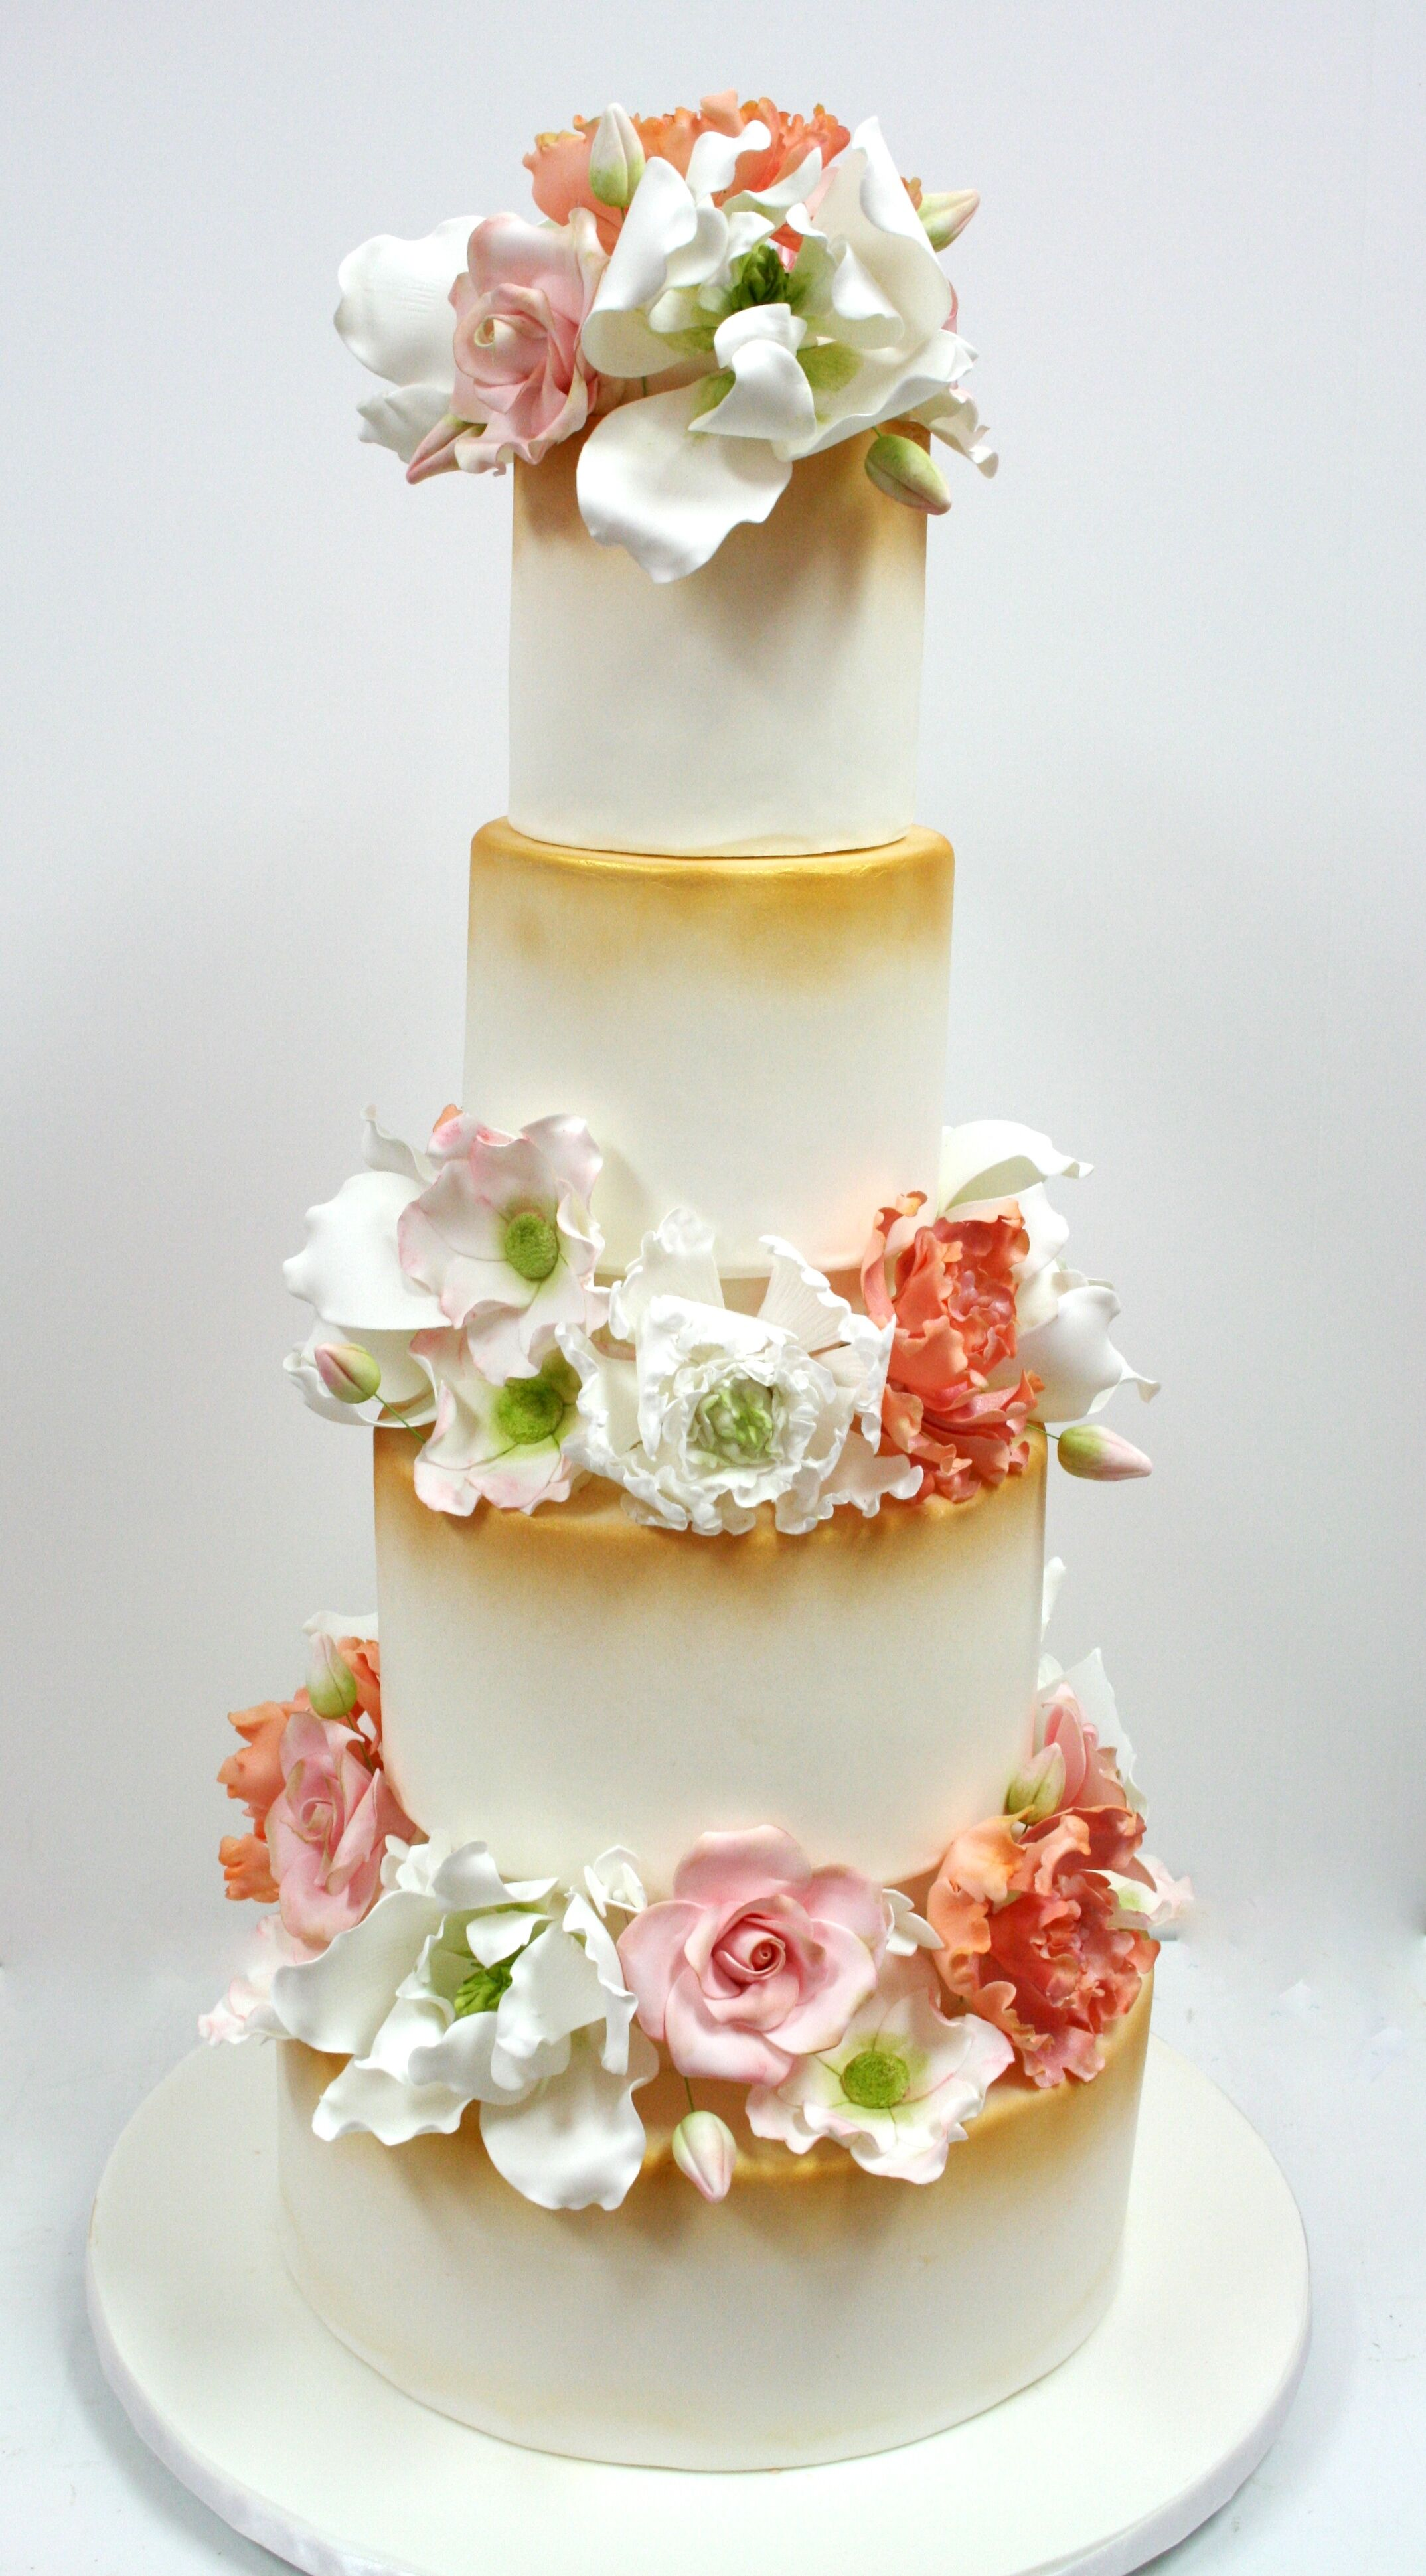 Wedding Cake Bakeries in White Plains, NY - The Knot